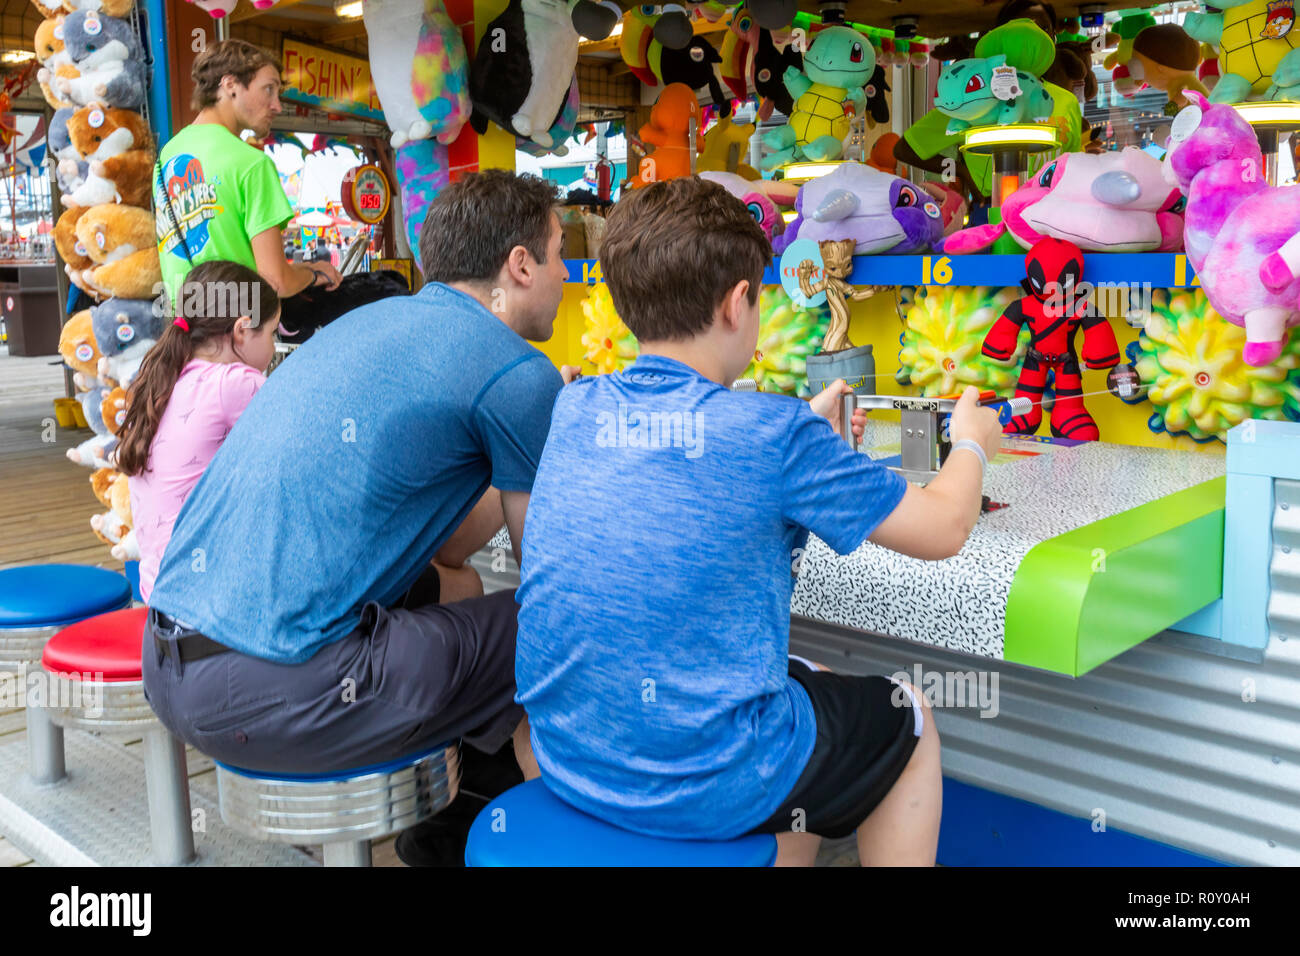 Fun and games on the boardwalk at the ocean. - Stock Image